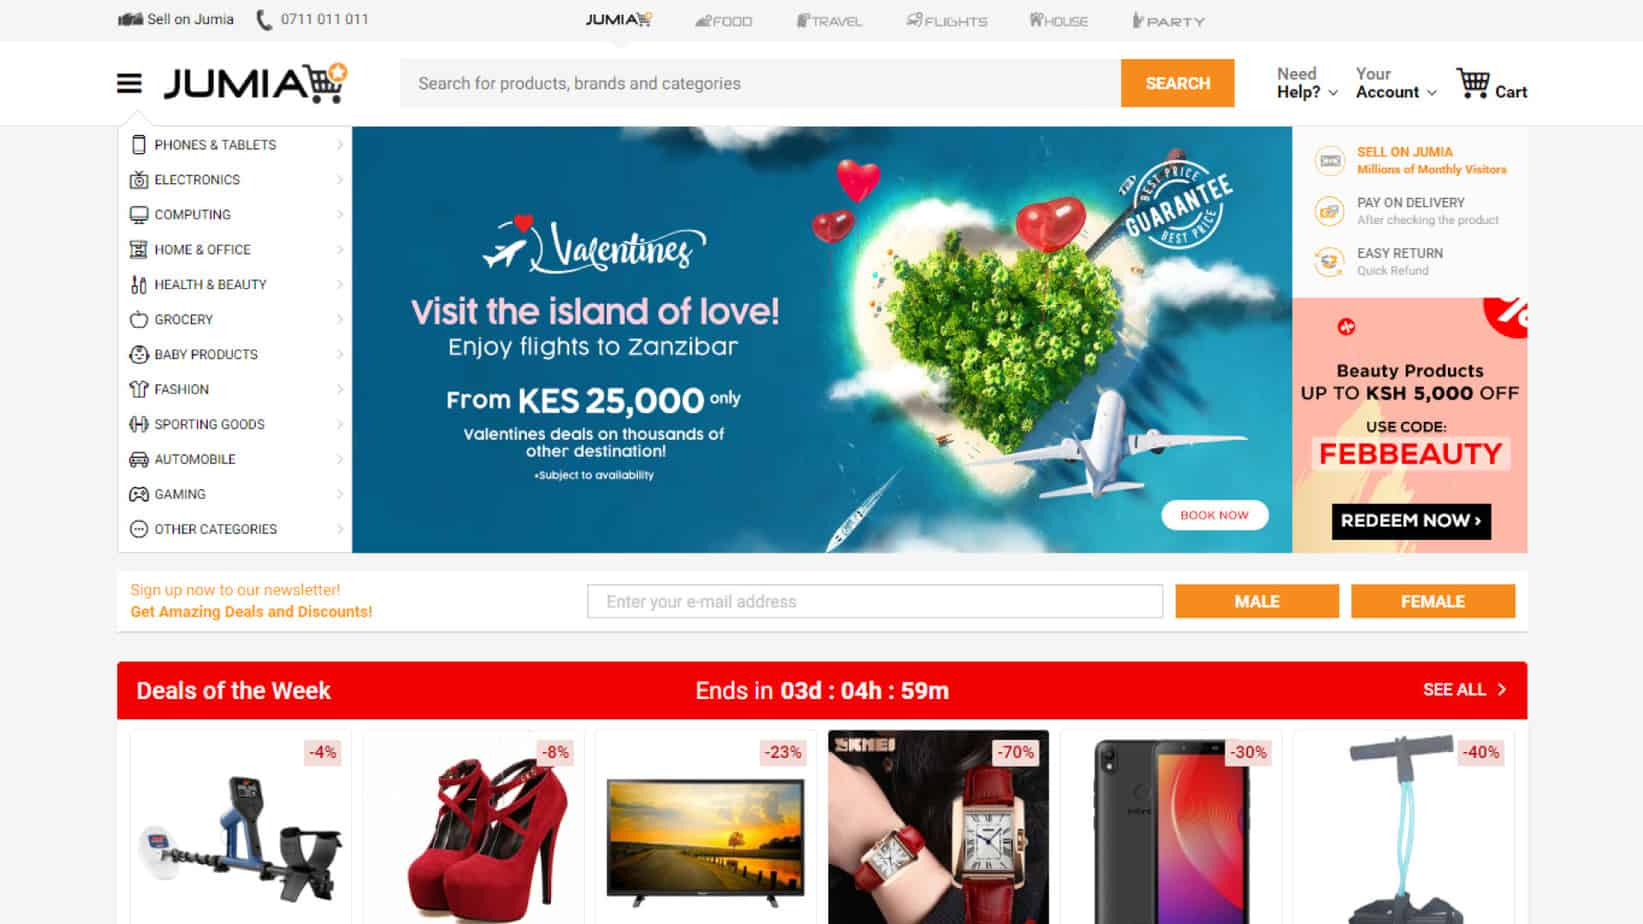 e7b6d32e82 Jumia is one of the leading online retail stores in Kenya with the  implementation of best practices both online and offline. This e-commerce  ...